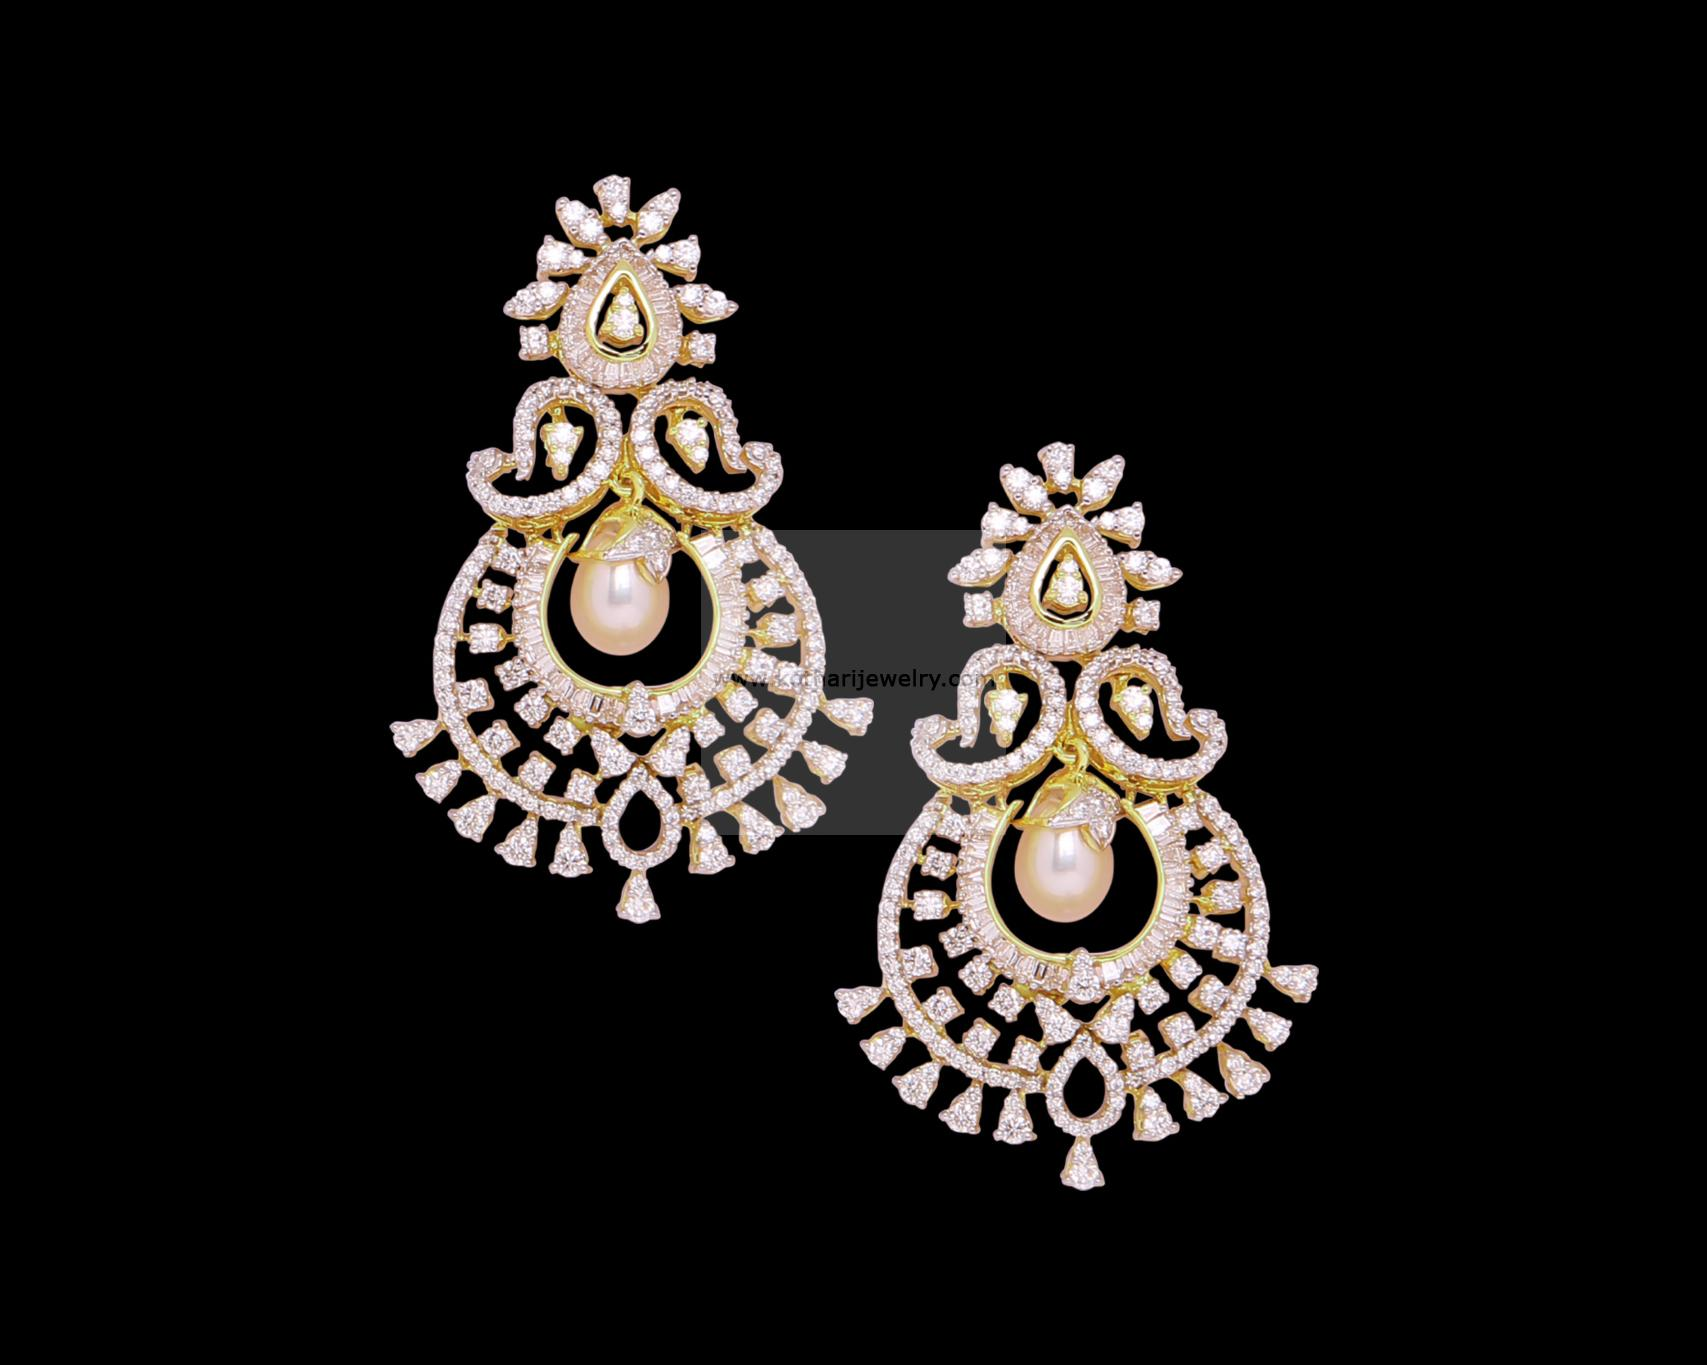 kothari s jhumka rings jhumkas tremendous choker diamond and ear pin